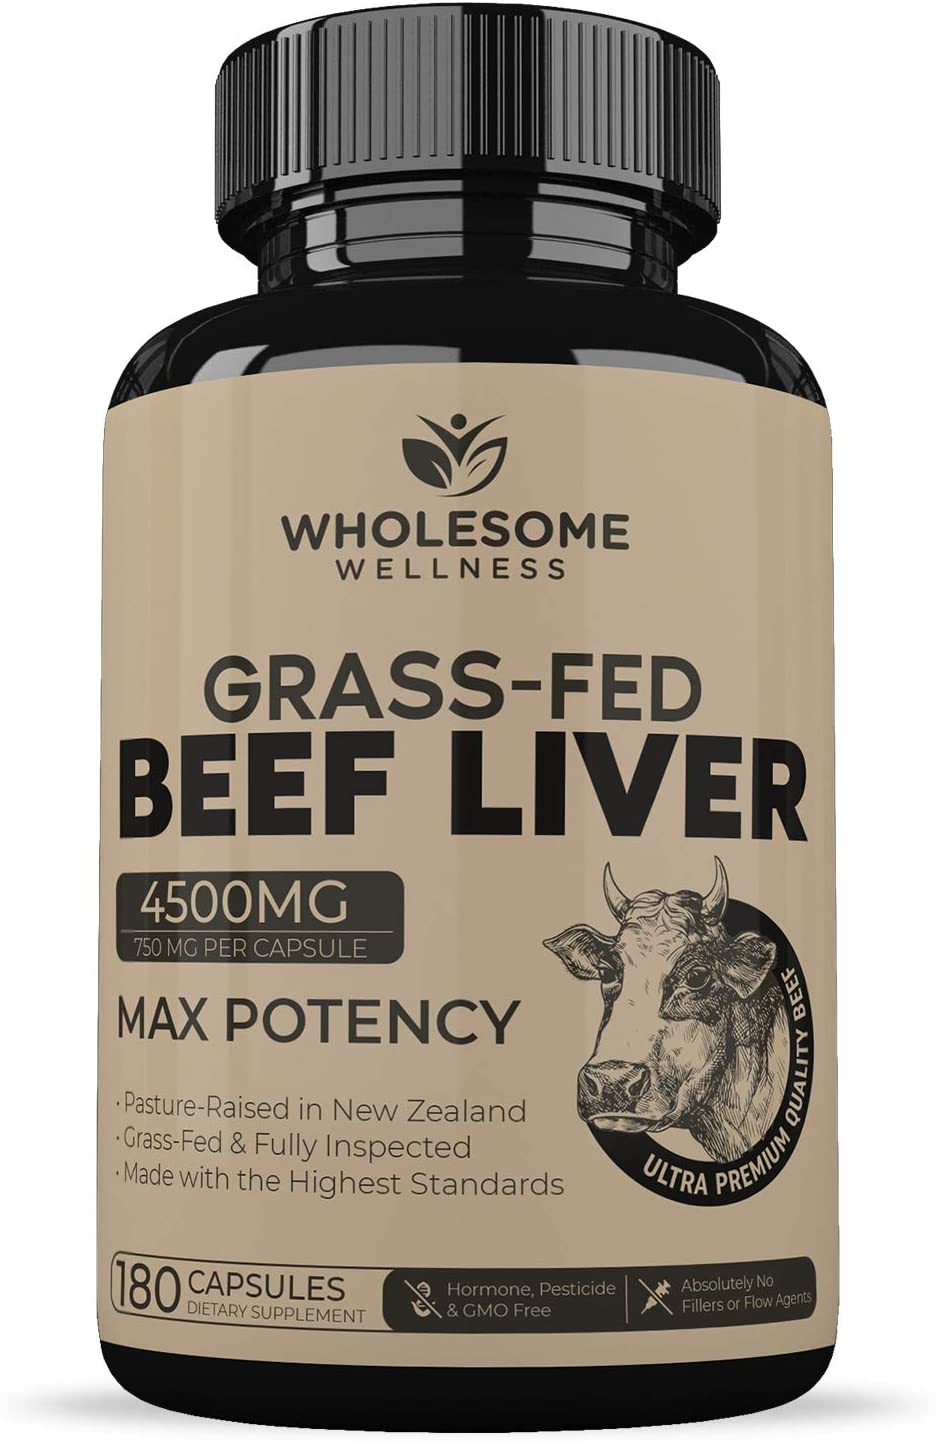 Wholesome Wellness Grass Fed Desiccated Beef Liver Capsules (750 milligrams, 180 Pills) - Natural Iron, Vitamin A, B12 for Energy - New Zealand Pasture Raised Undefatted Without Hormones or Chemicals